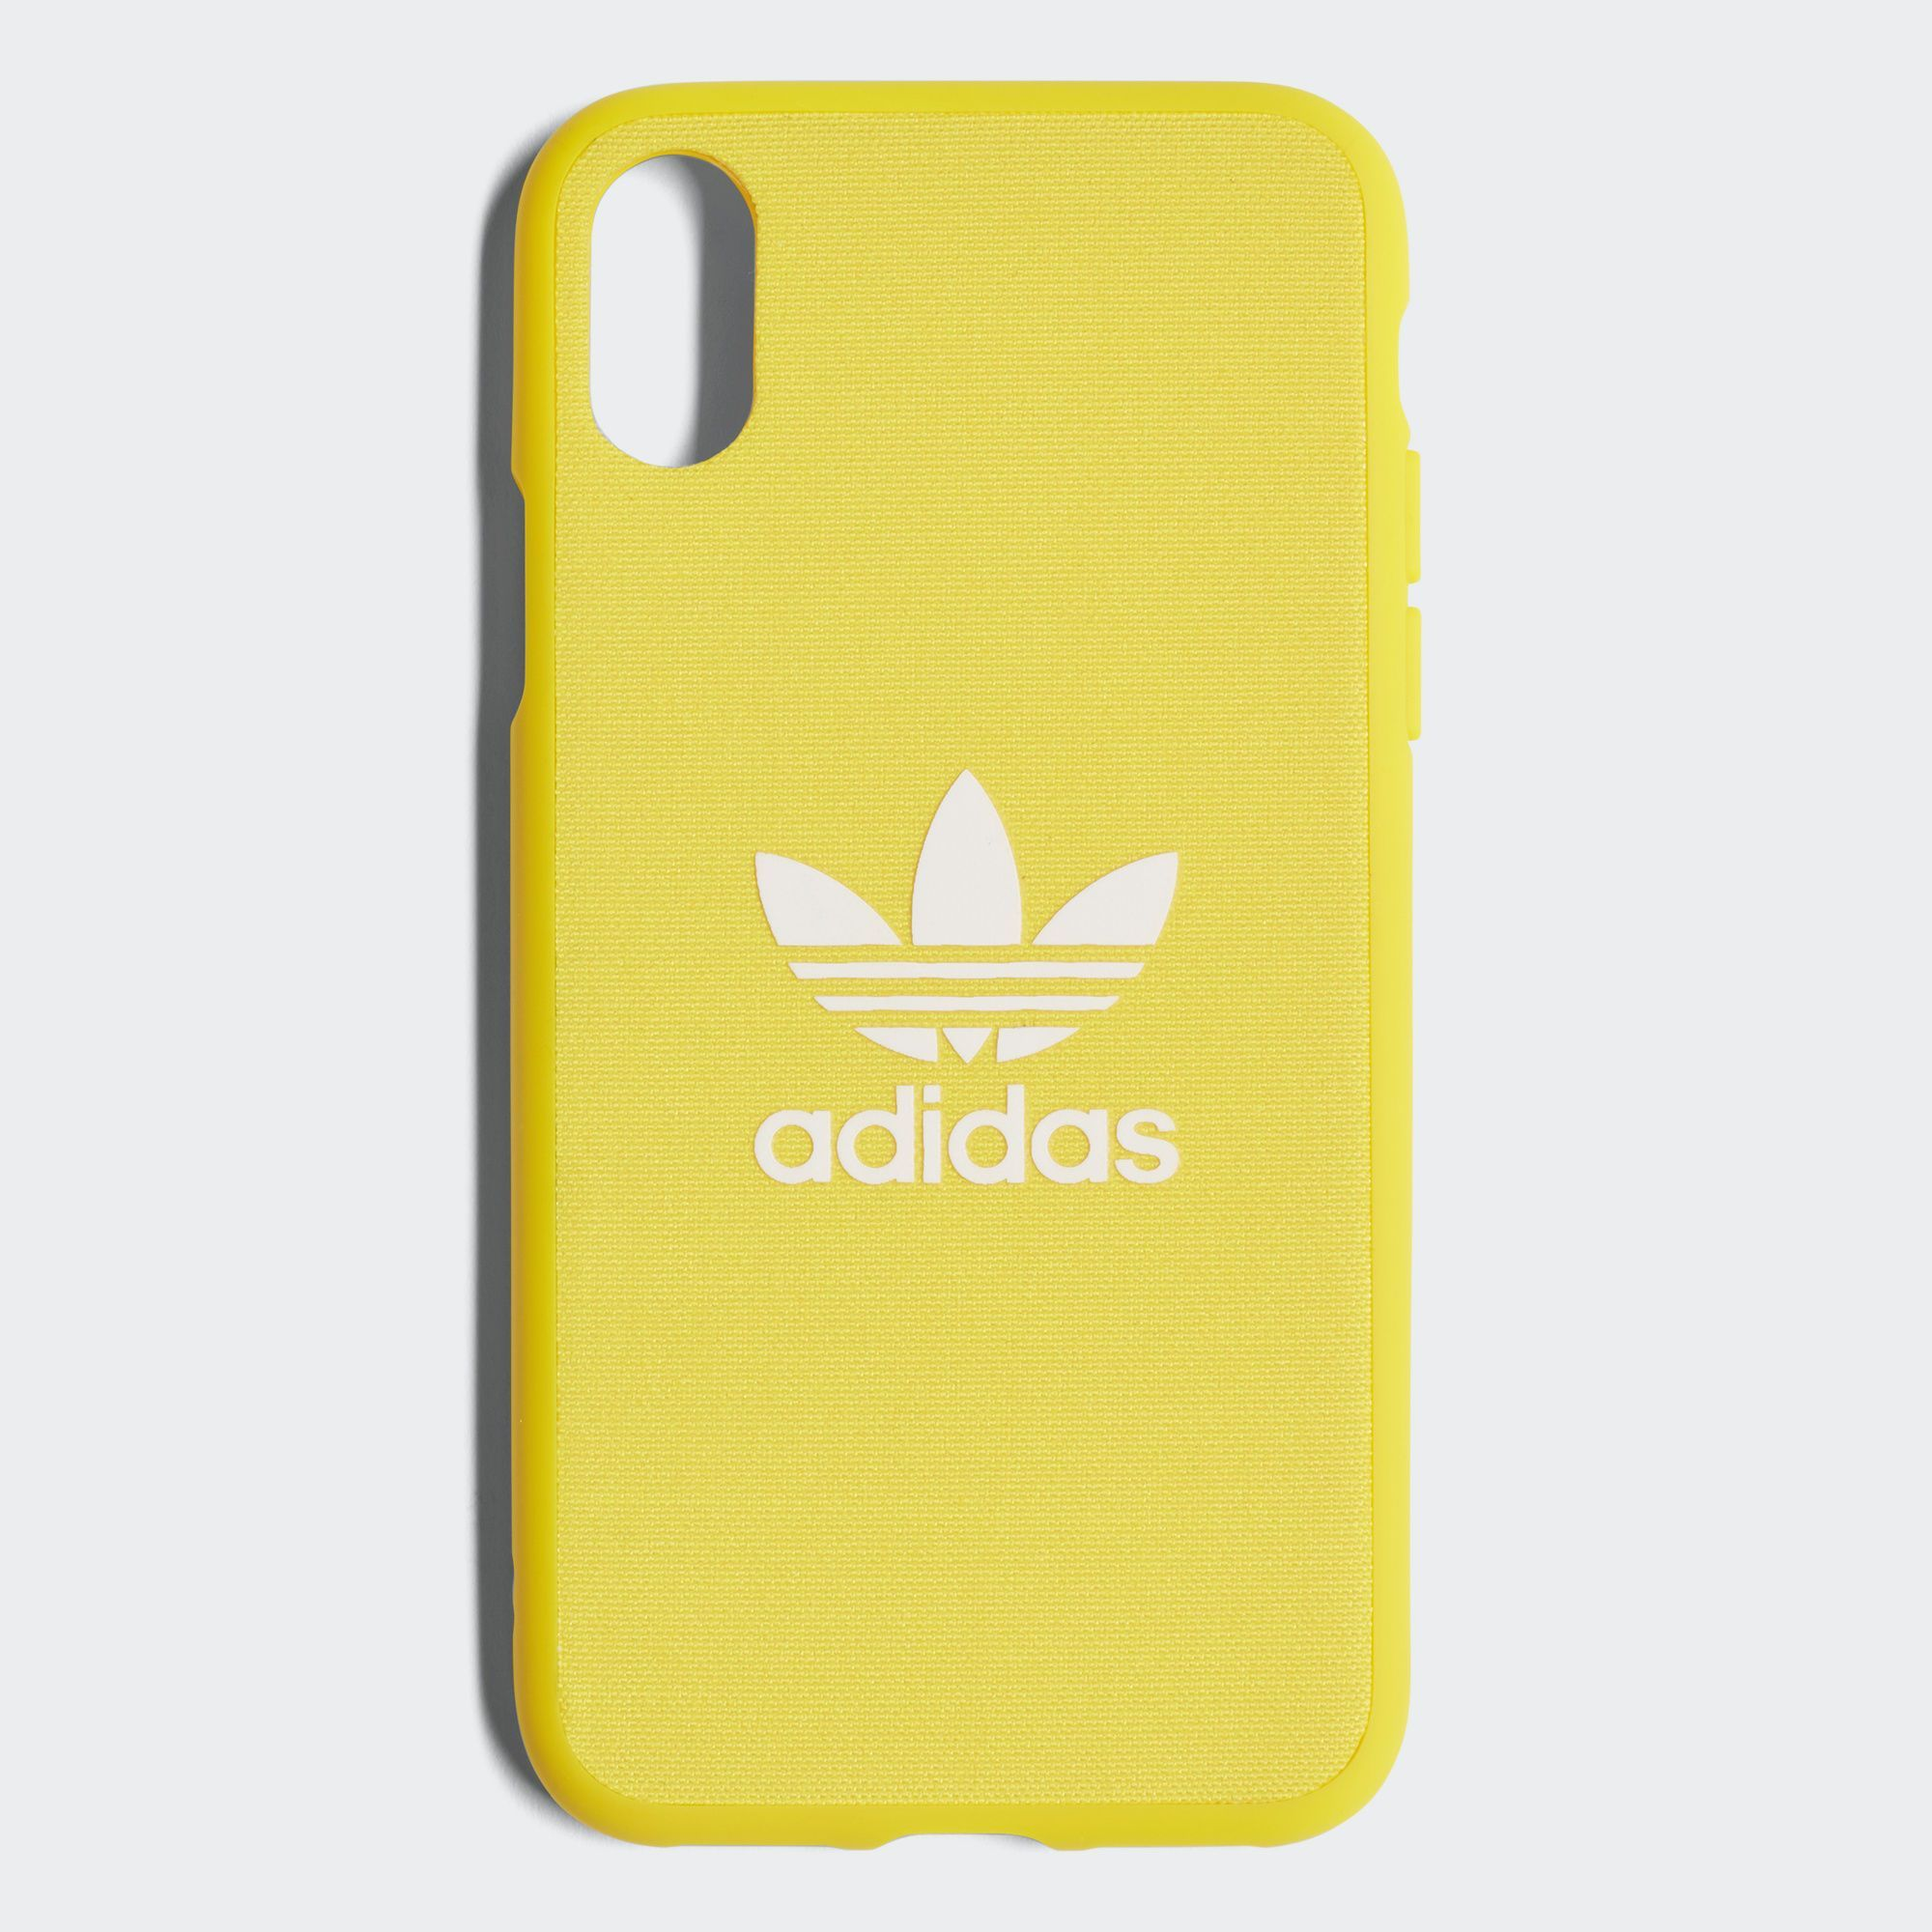 buy online 98536 c706e adidas Adicolor Snap Case iPhone X - Yellow   adidas US  iphone7plus